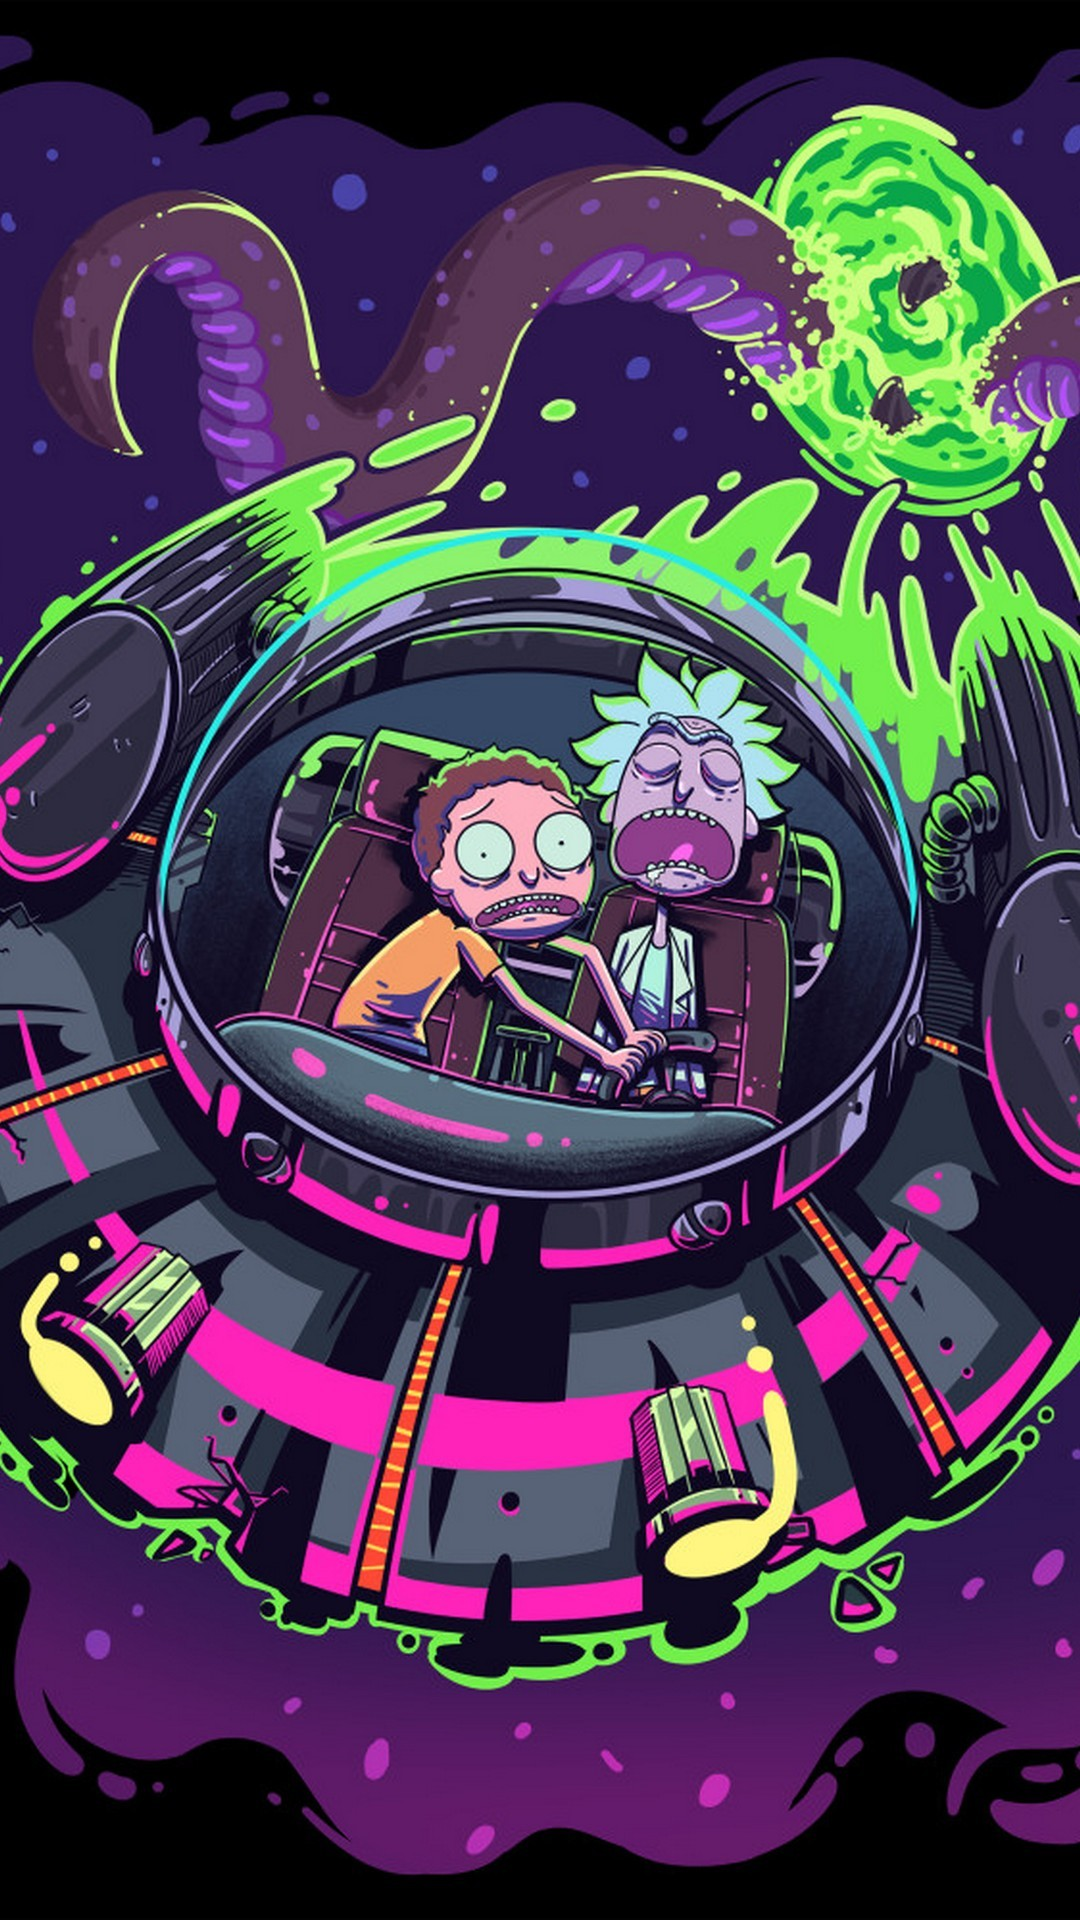 Rick and Morty Season 3 Wallpapers  87  images  1920x1080 Rick and Morty          Music  Council of Ricks